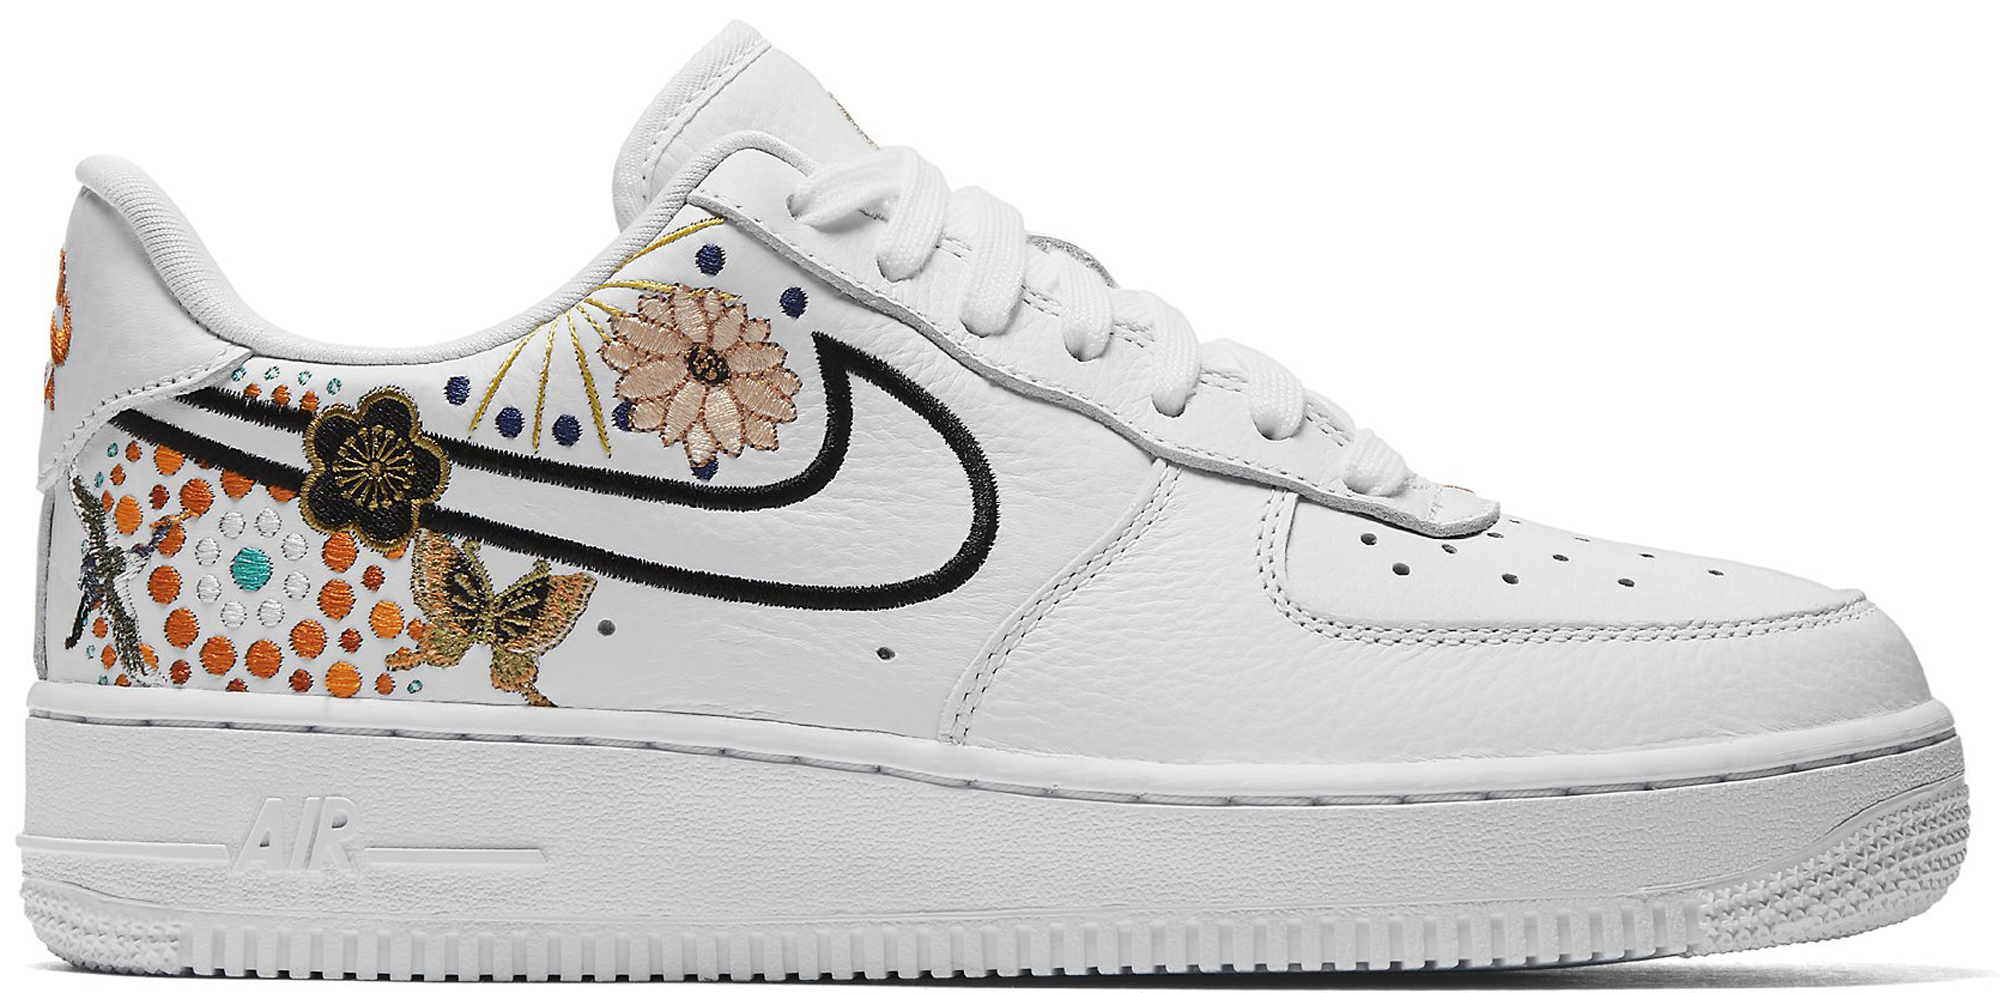 new products 9cb70 a9a0c Women's Nike Air Force 1 Low Lunar New Year 2018 - StockX News